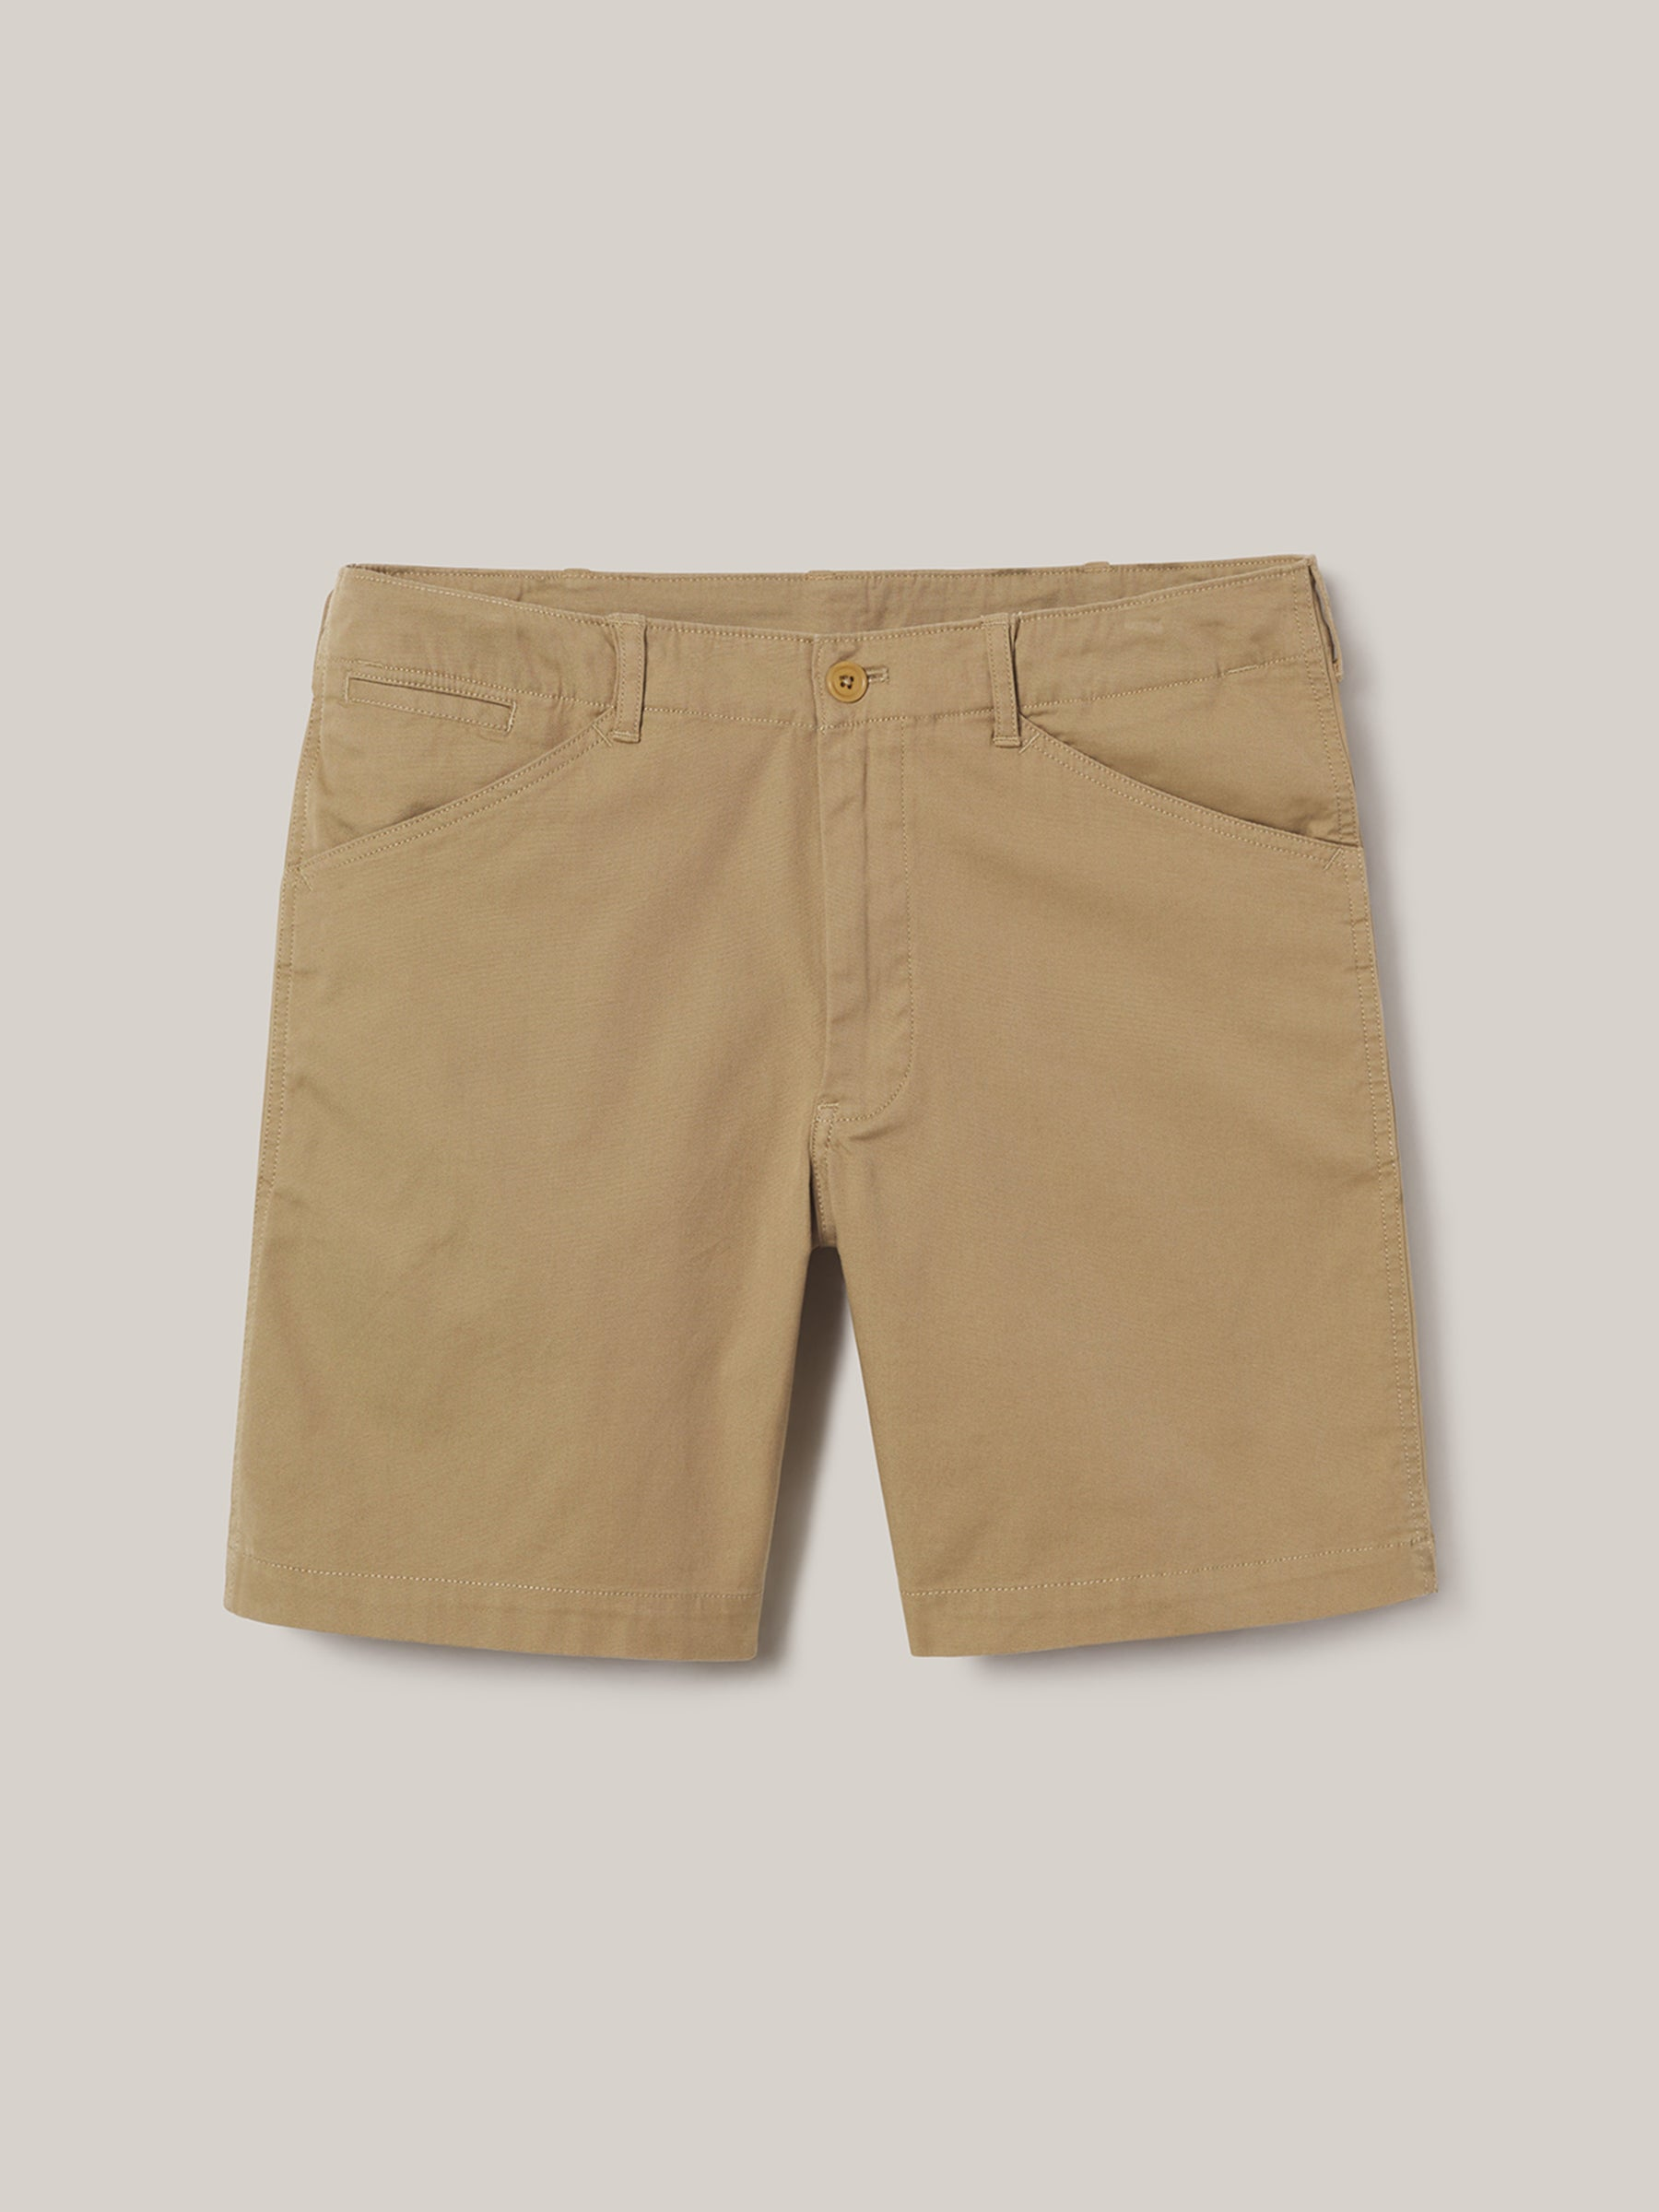 Willow Mojave Wash Vintage Canvas 8 Inch Walk Short